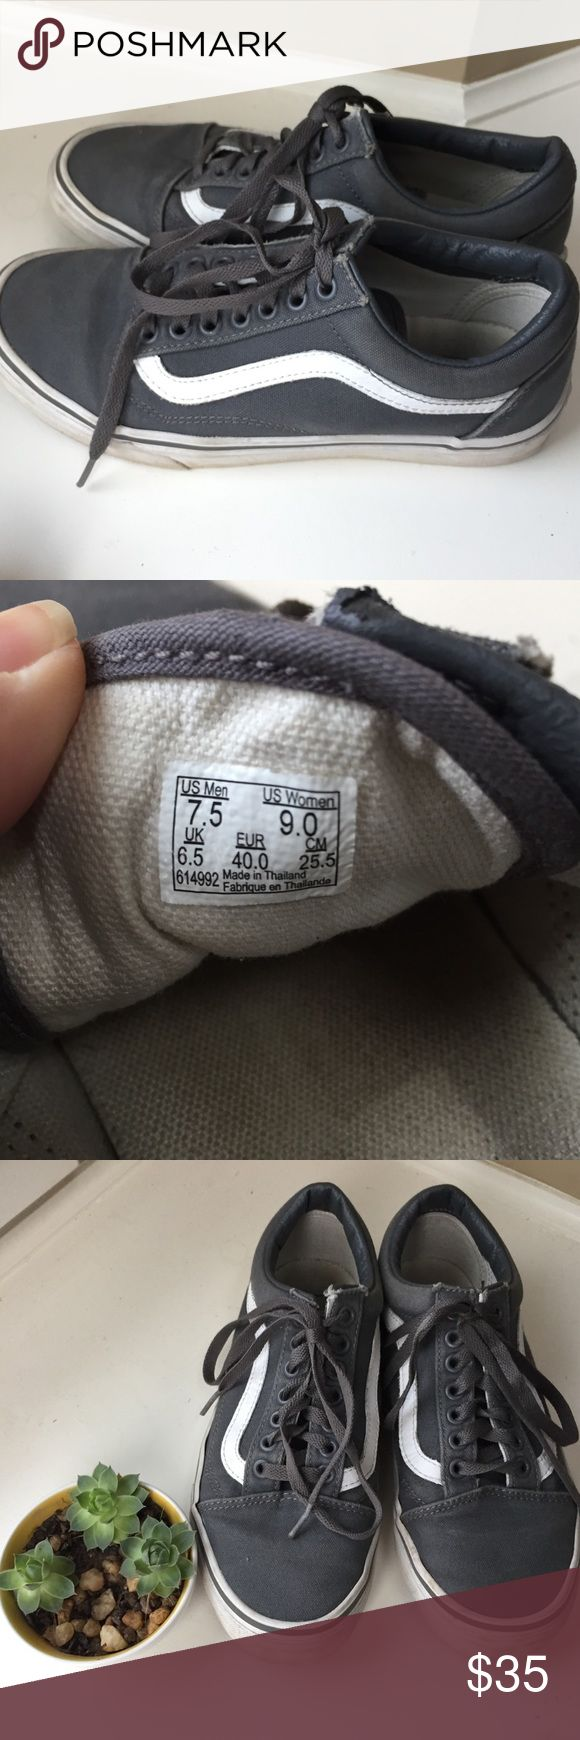 Vans Sk8 low gray Pre loved condition but soles are in great shape. A bit of wear near the top lacing eye (pictured and reflected in the price) Vans Shoes Sneakers